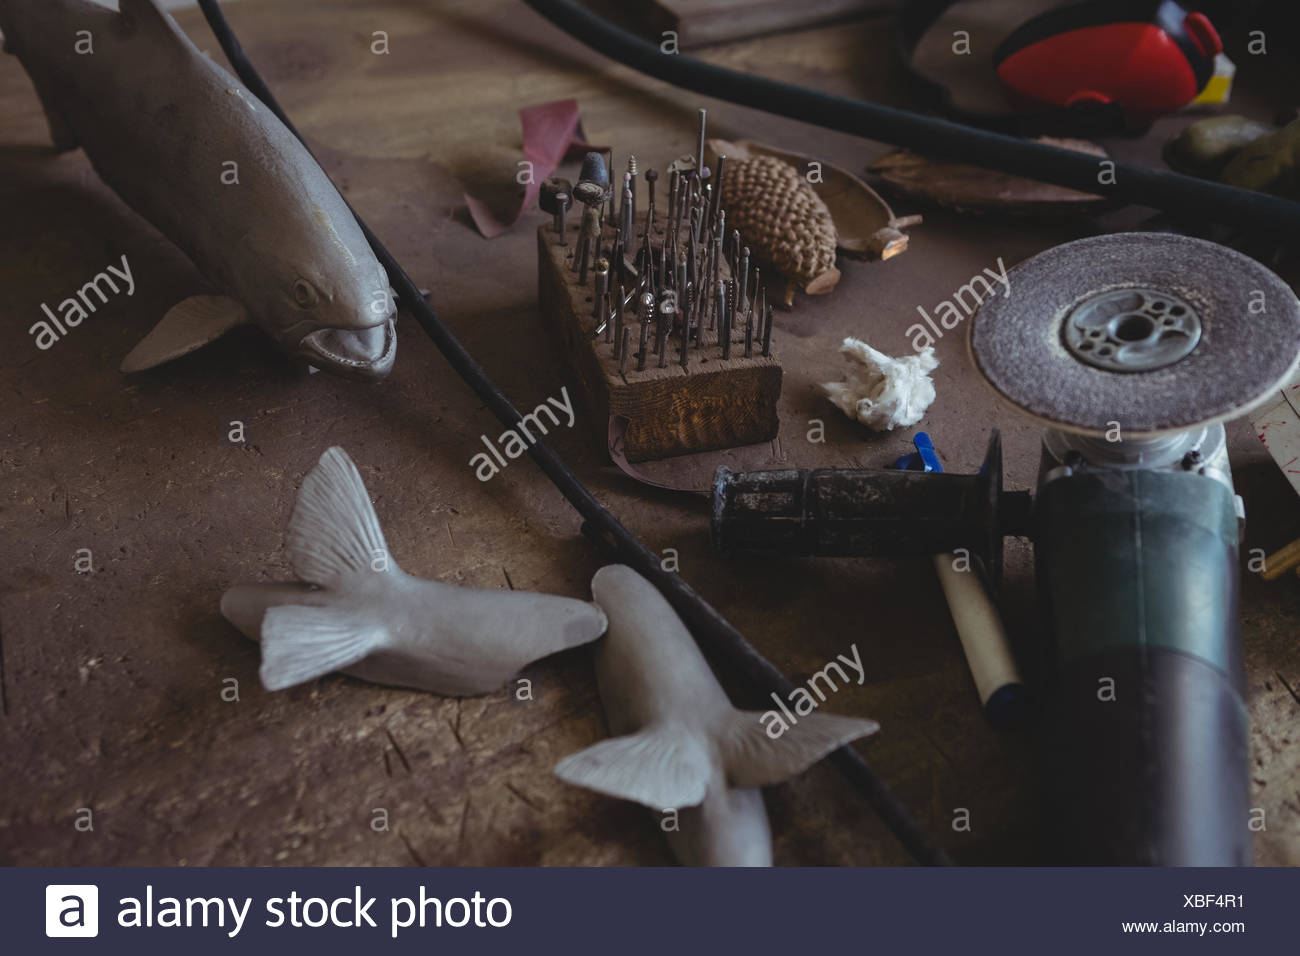 Metal fish and hand tool on worktop in workshop - Stock Image